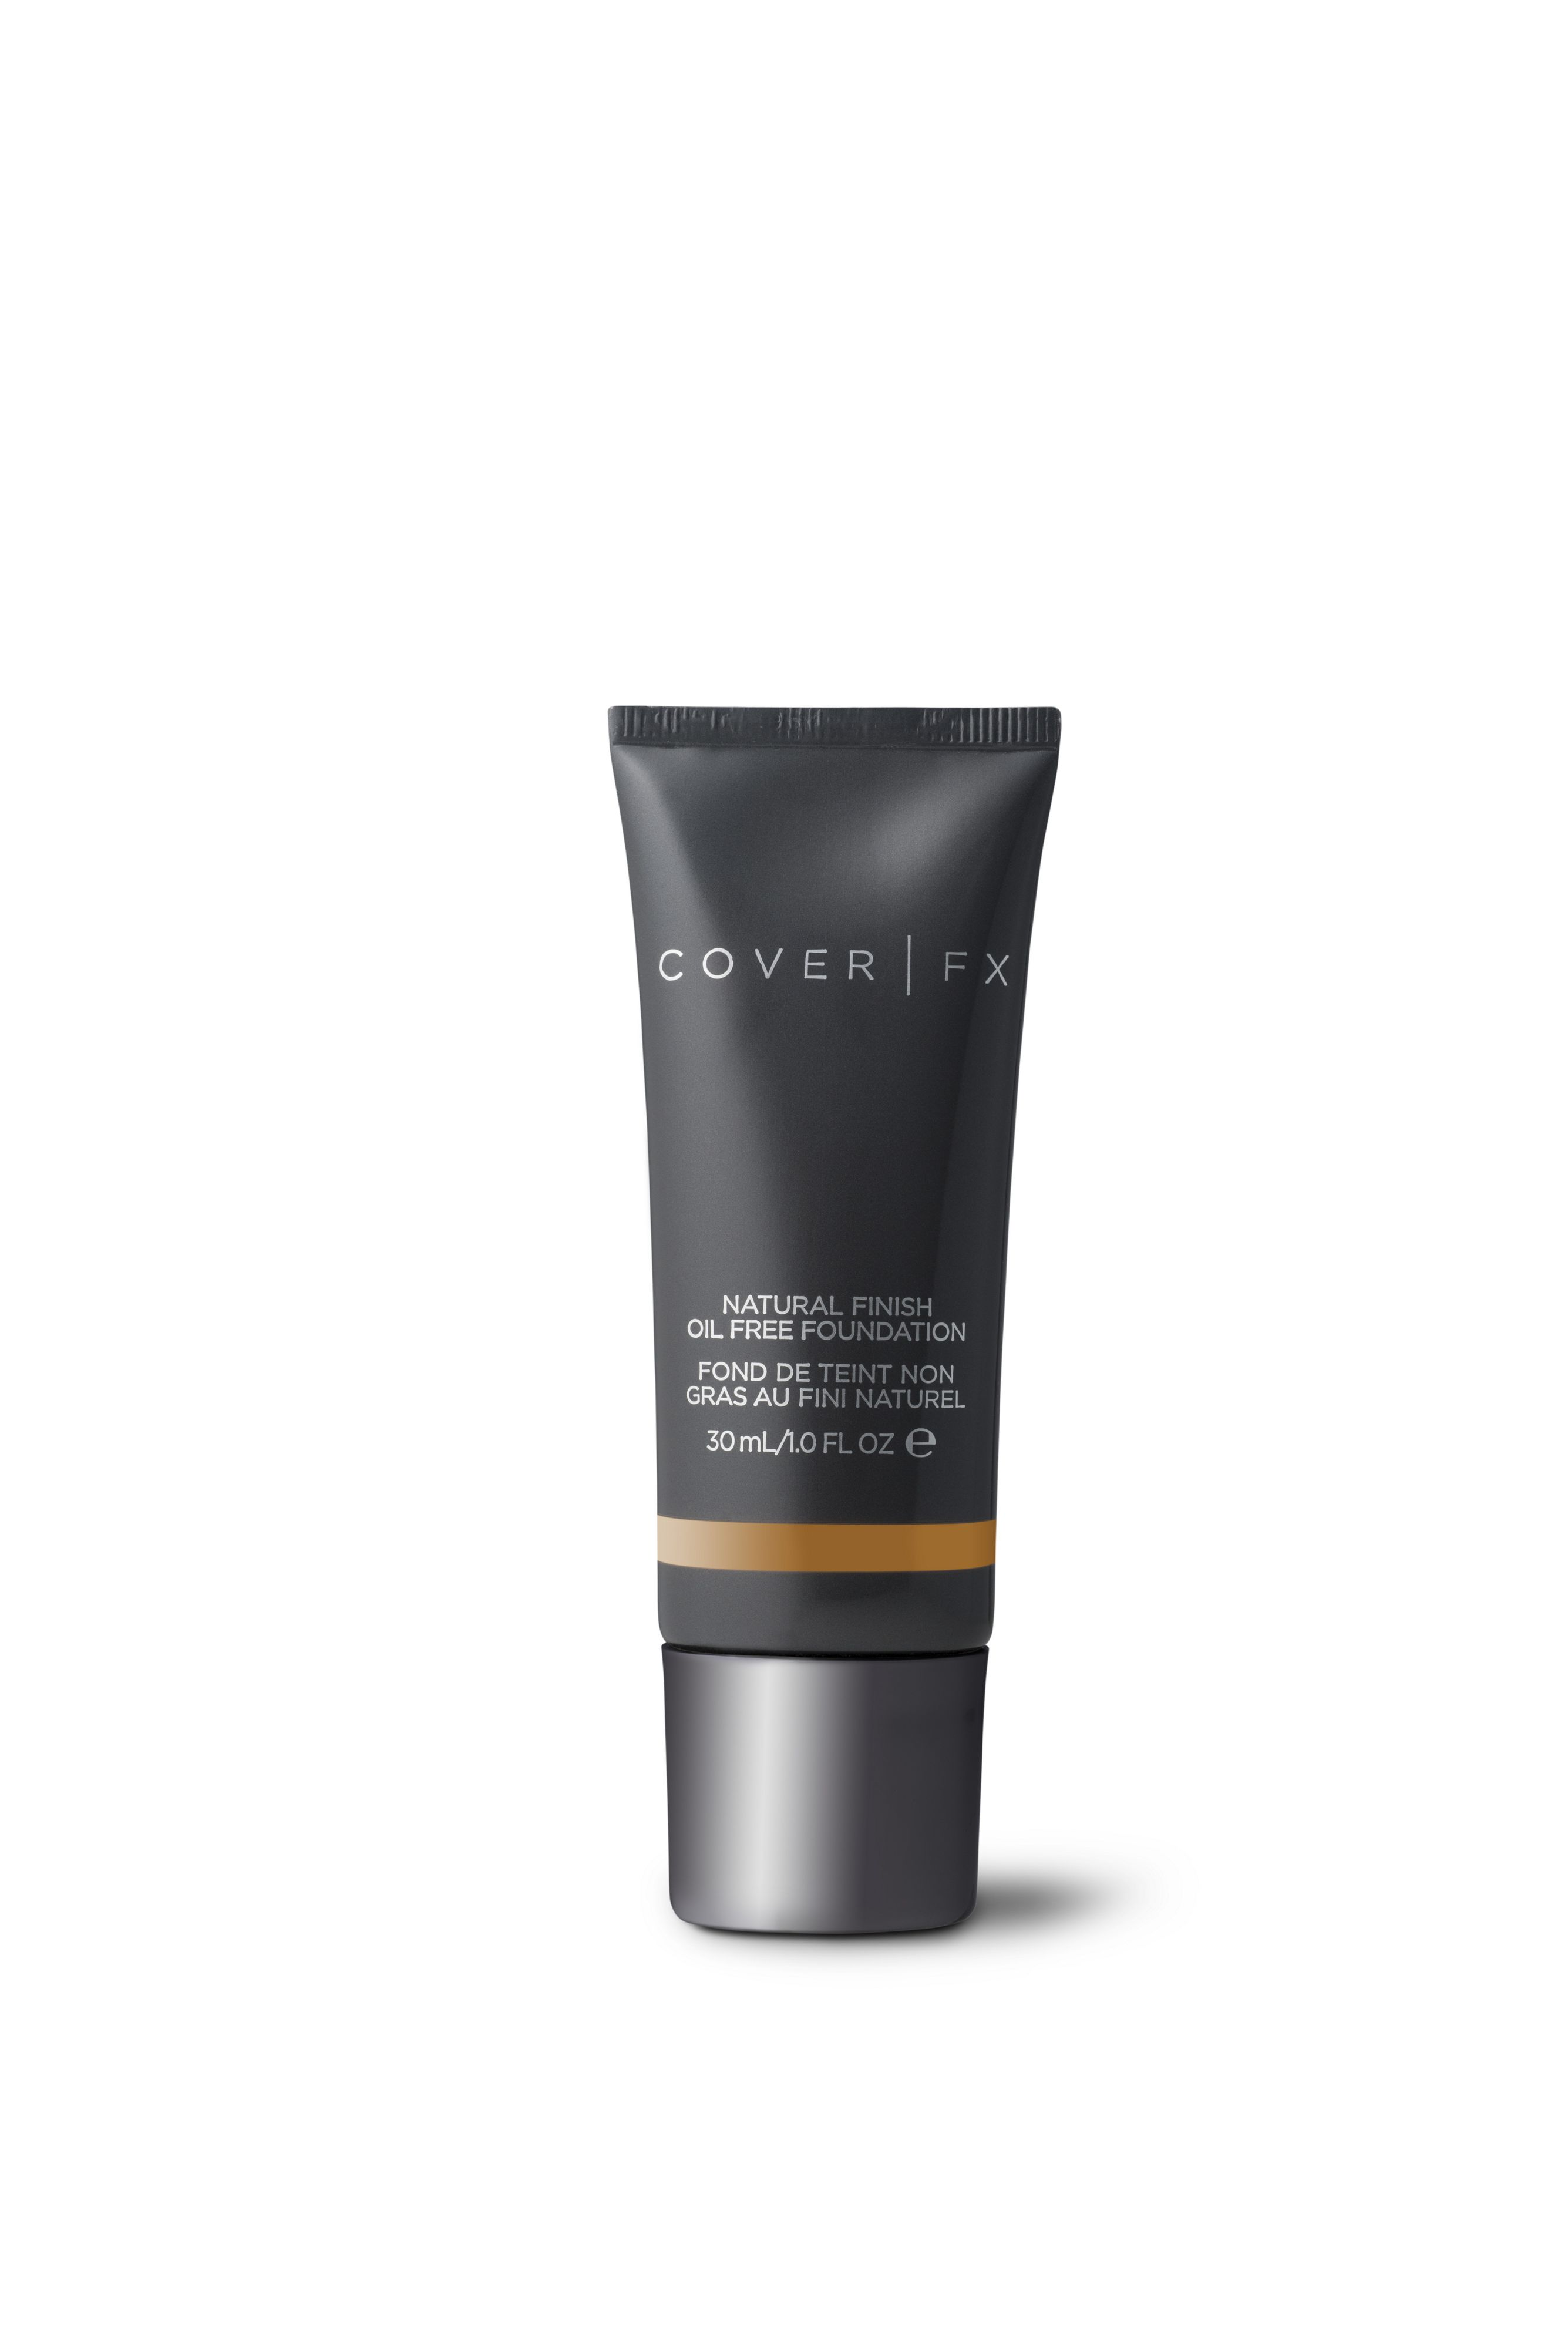 Cover FX Cover FX Natural Finish Oil-Free Foundation 30ml, G100